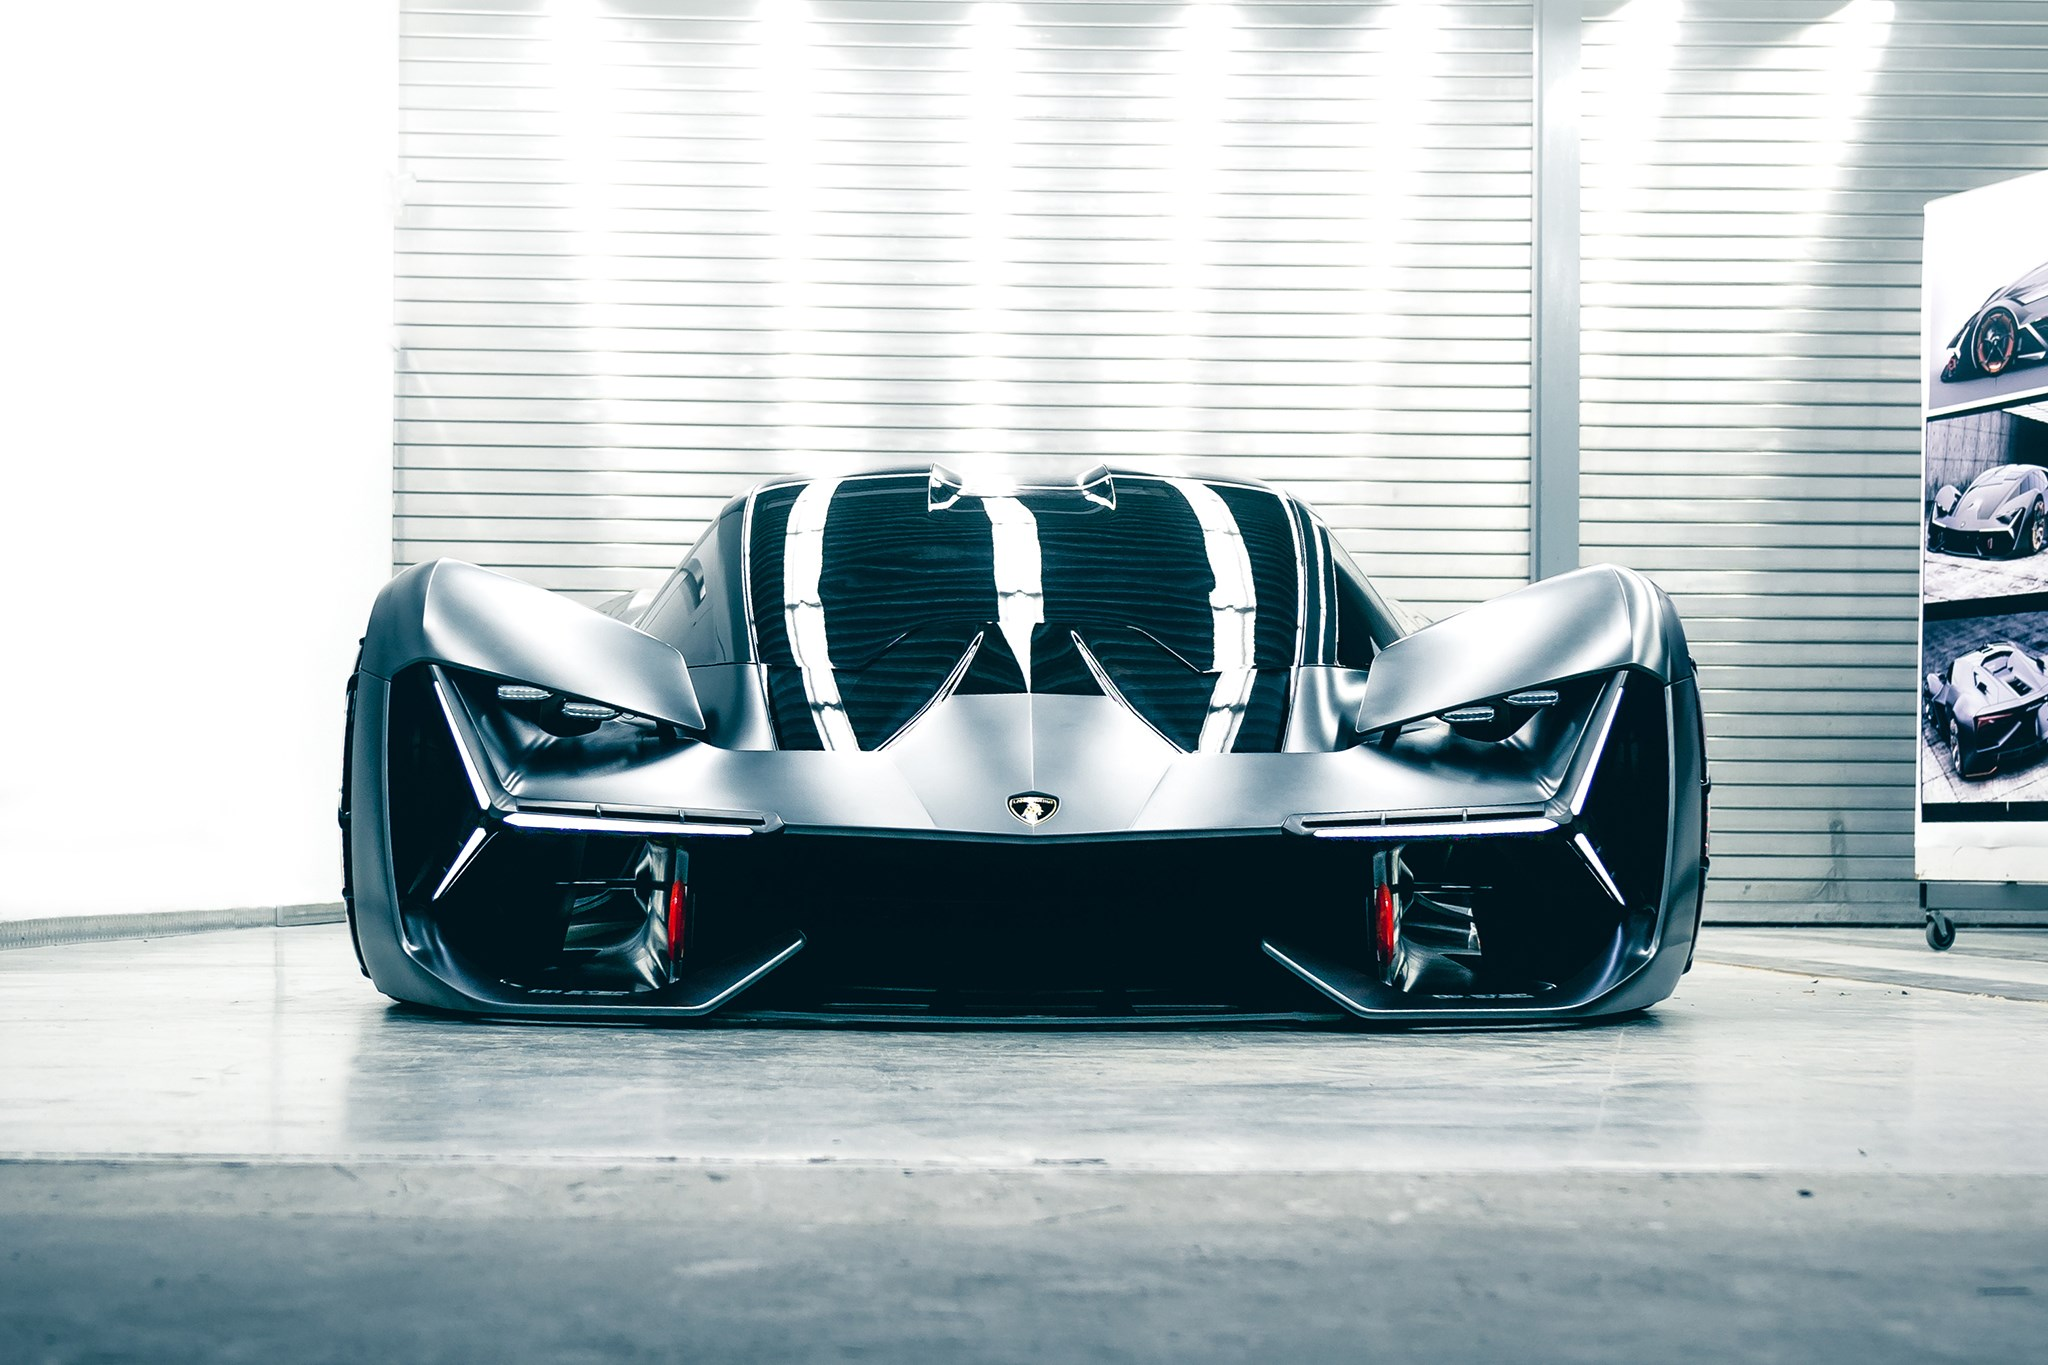 Lamborghini Terzo Millennio: specs, photos and news by CAR Magazine